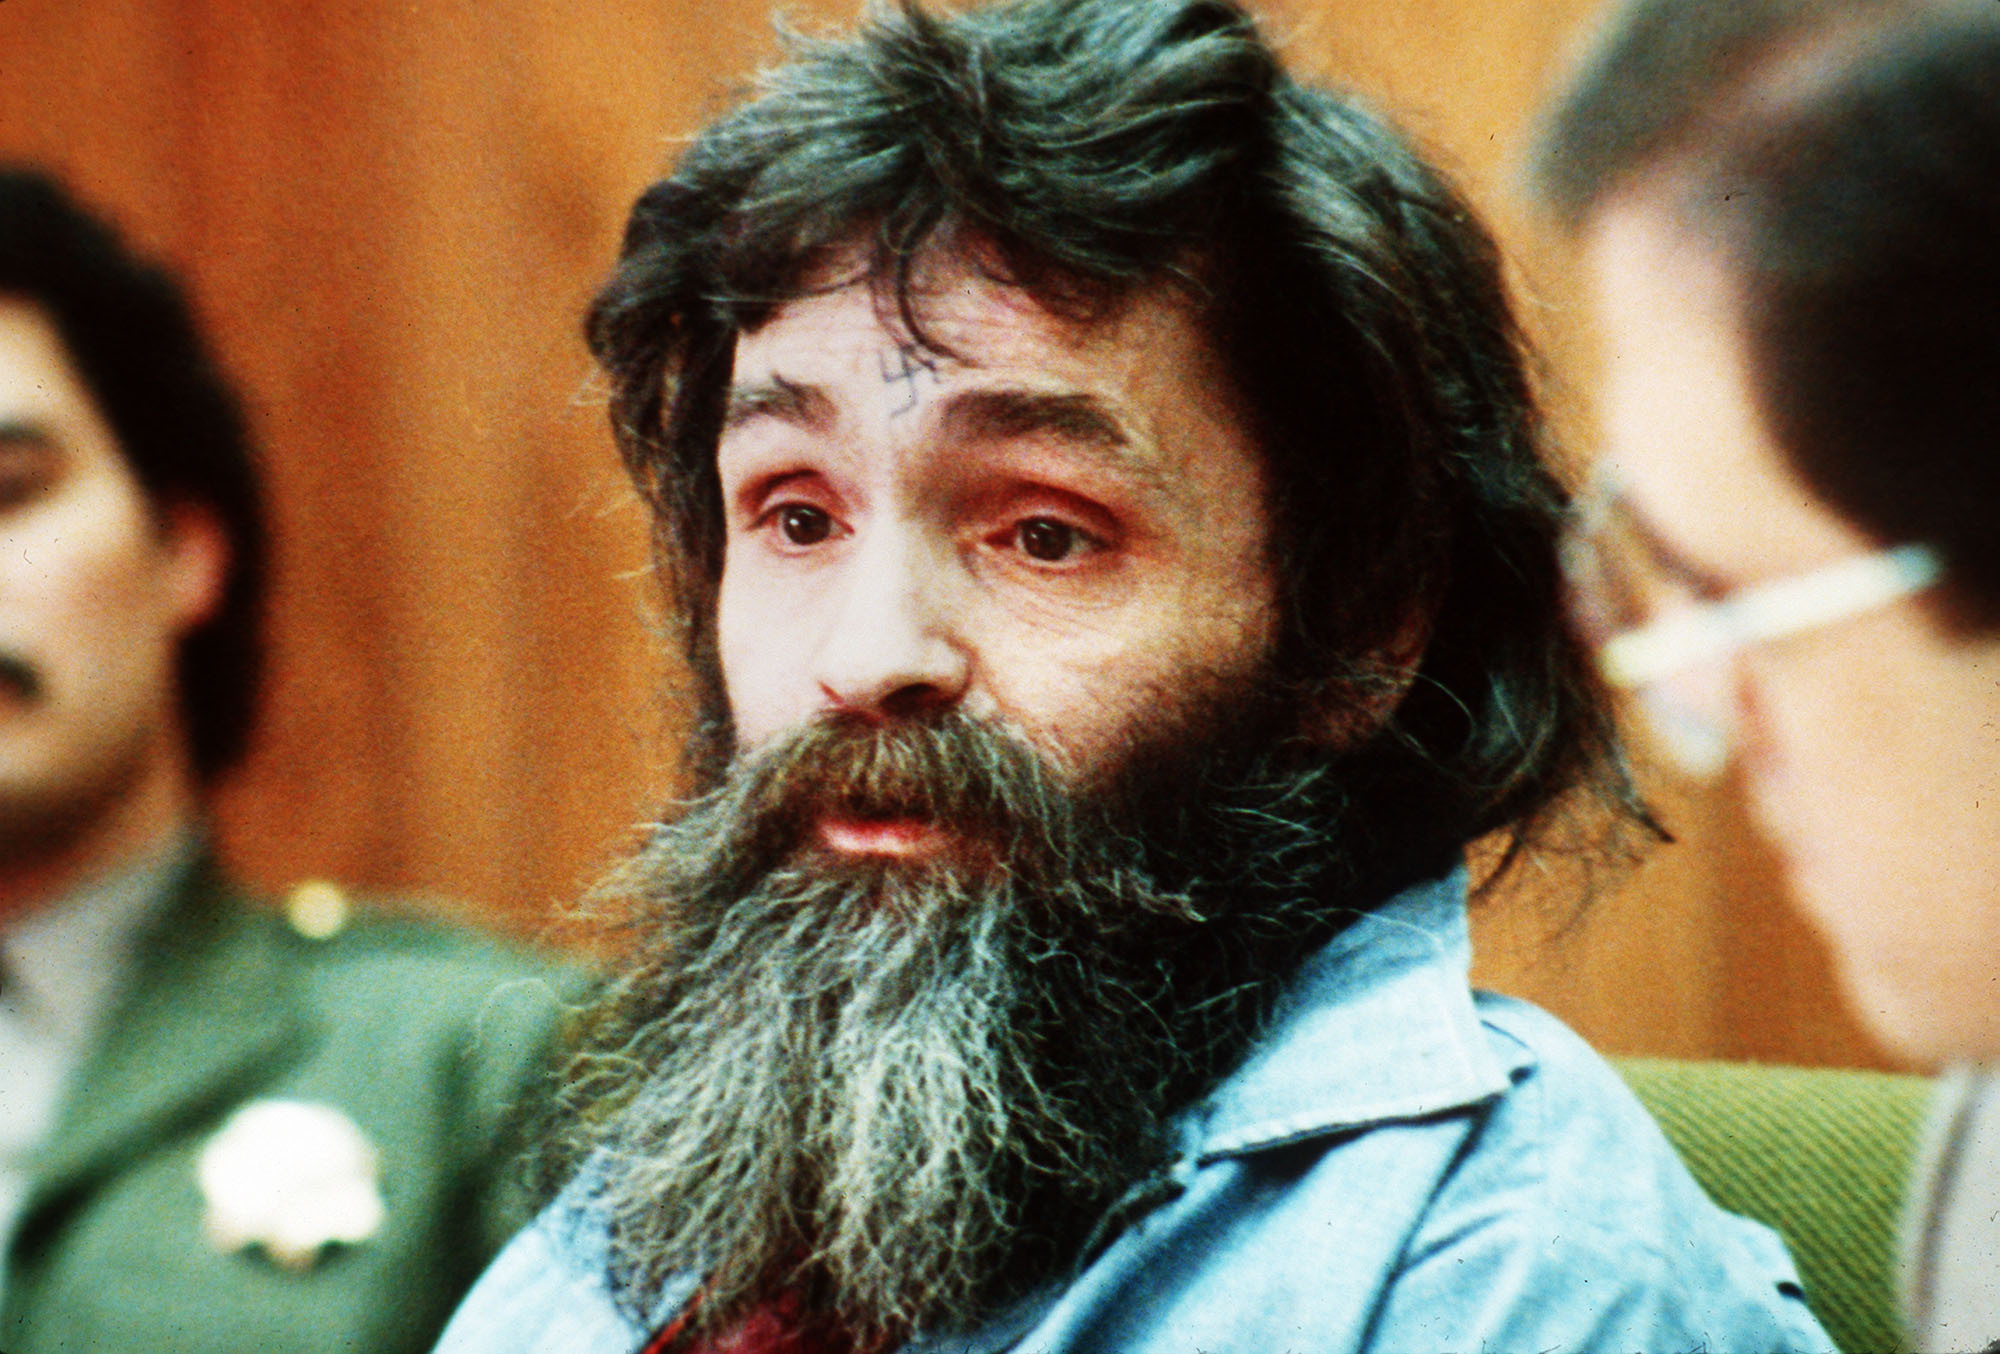 O filme sobre assassinatos de Charles Manson